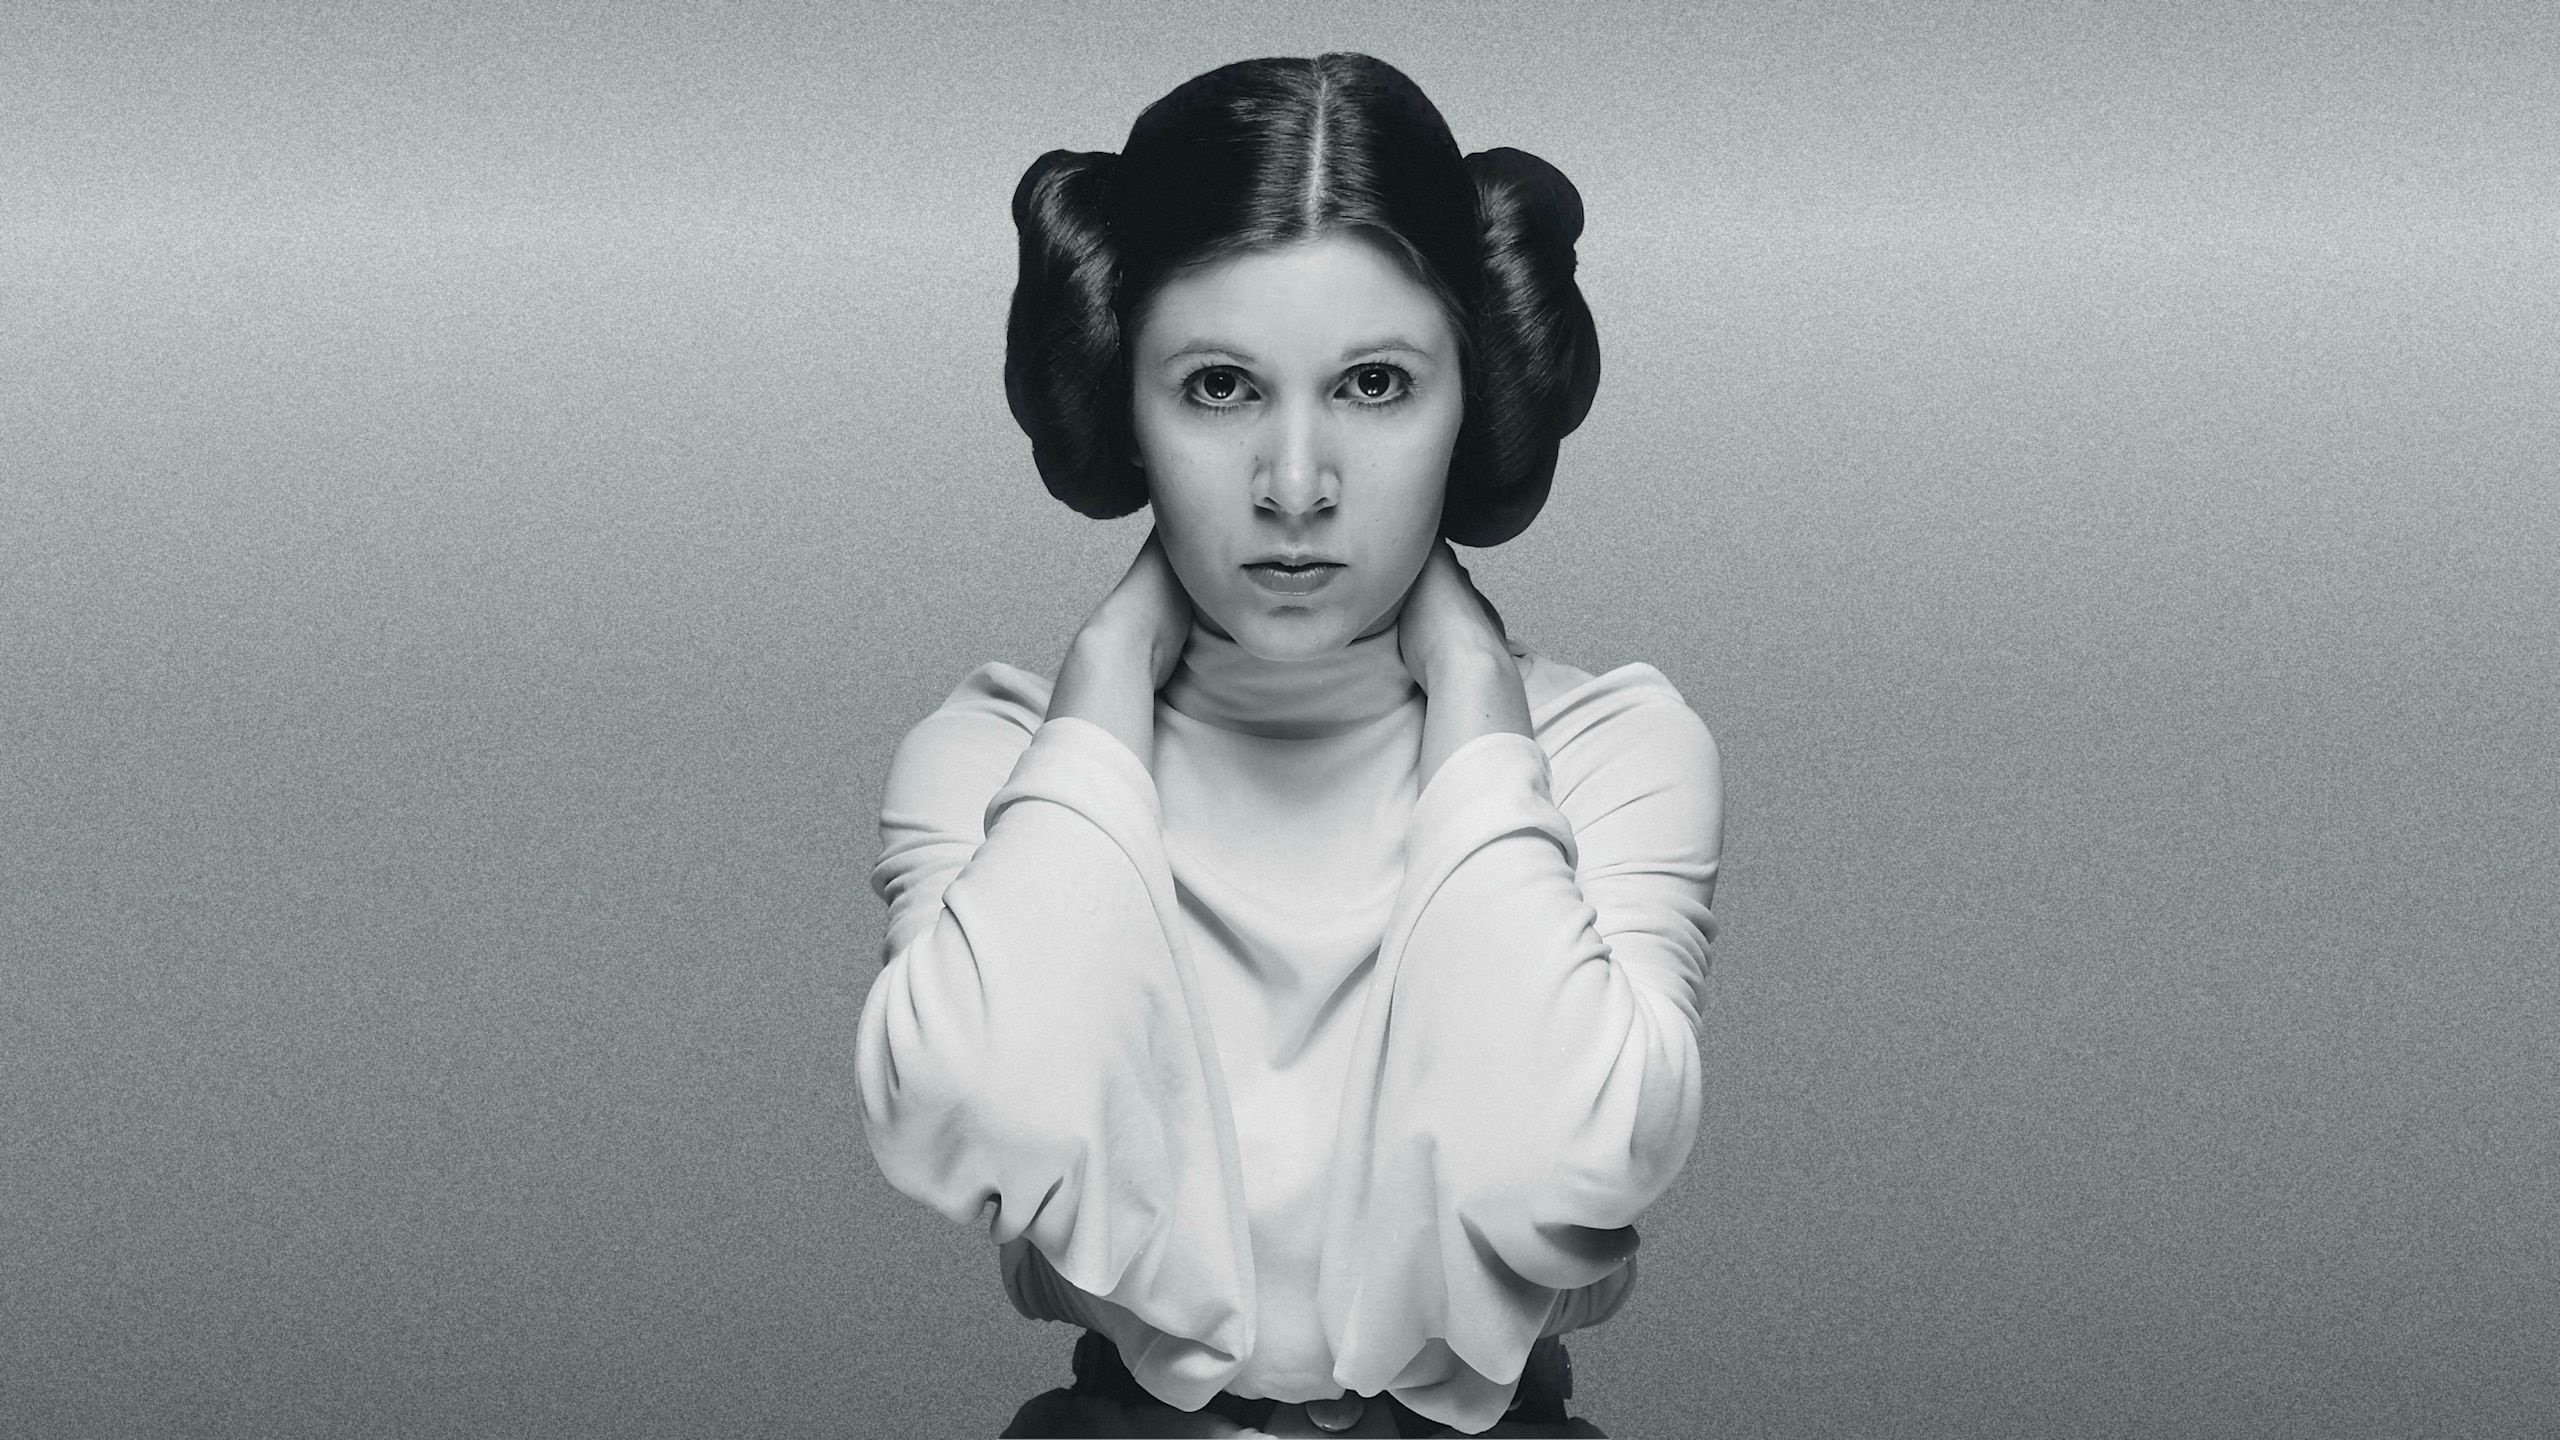 Star Wars, Marketing y Neuromarketing